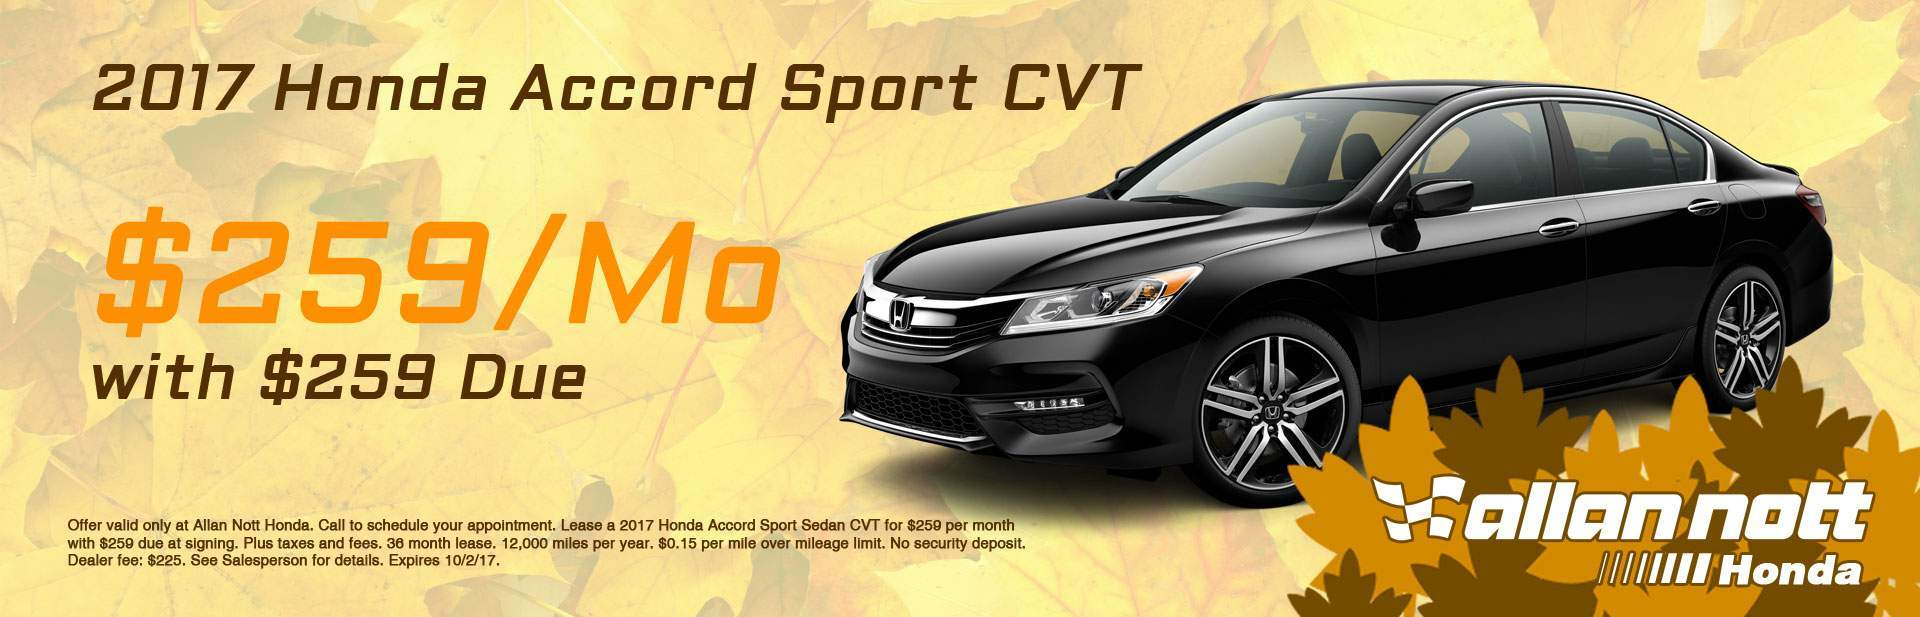 Lease a 2017 Honda Accord Sport for $259/Mo from Allan Nott today!